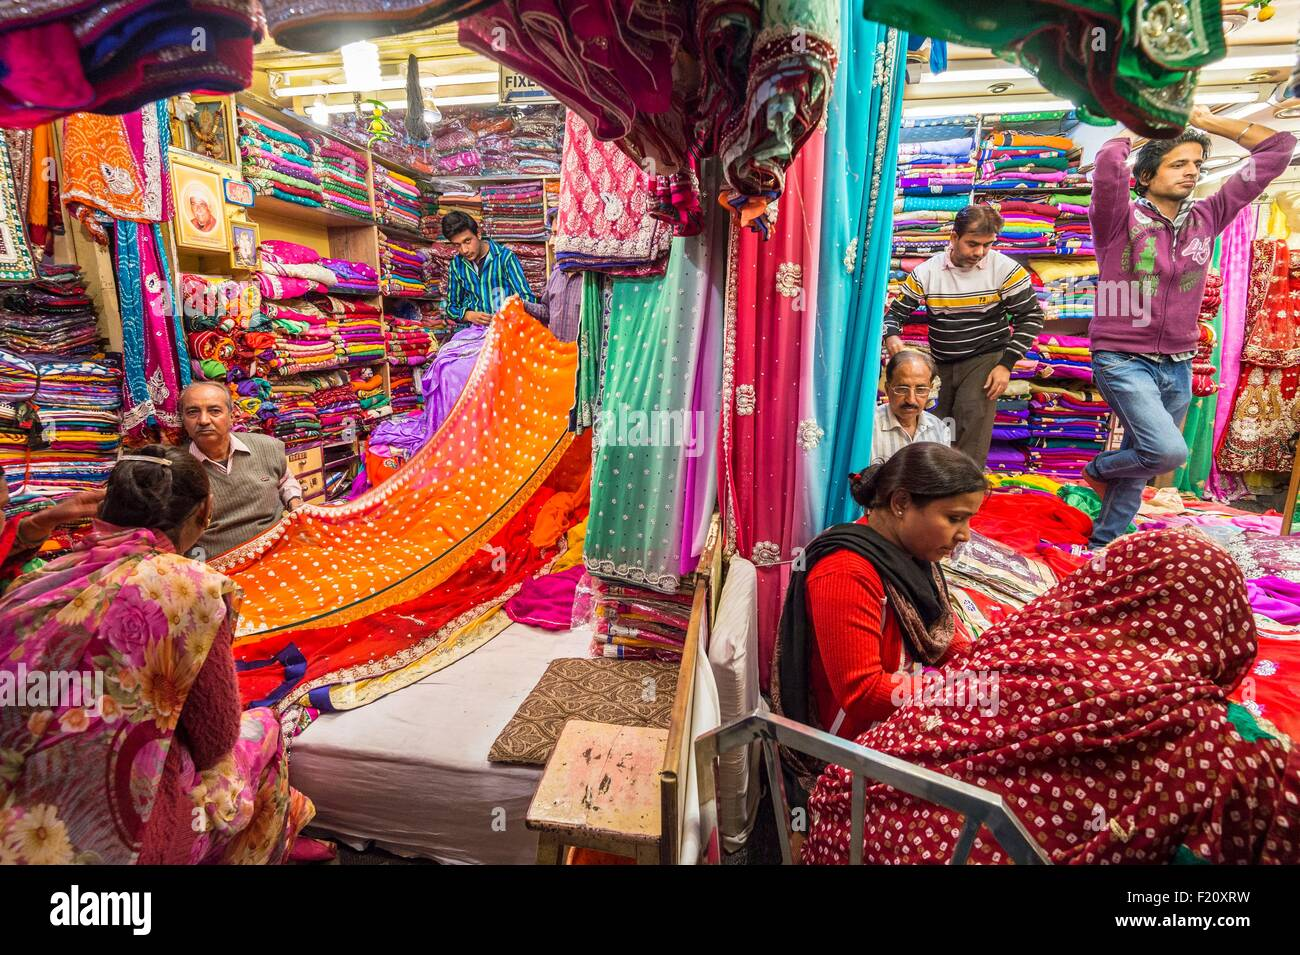 India, Rajasthan state, Jaipur, the Johari Bazar is the main market for sarees - Stock Image